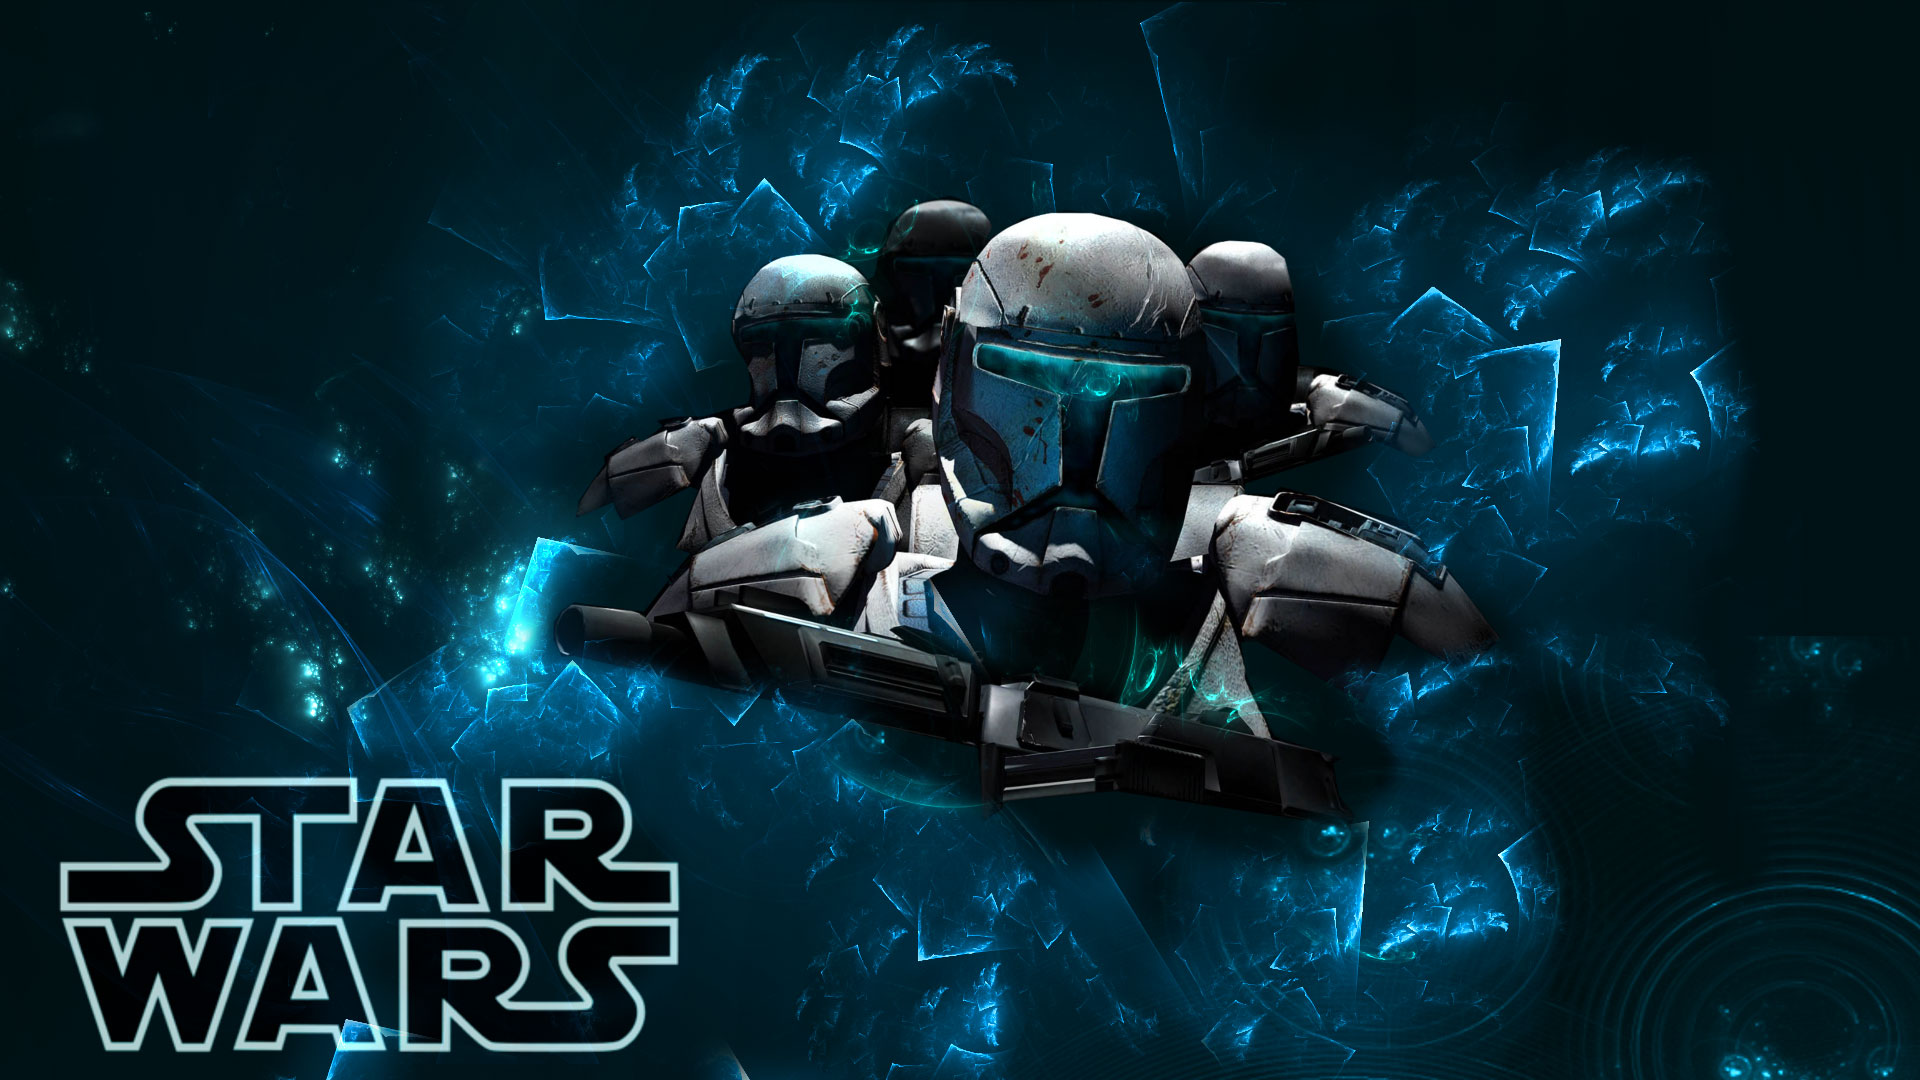 stormtrooper star wars wallpaper 6